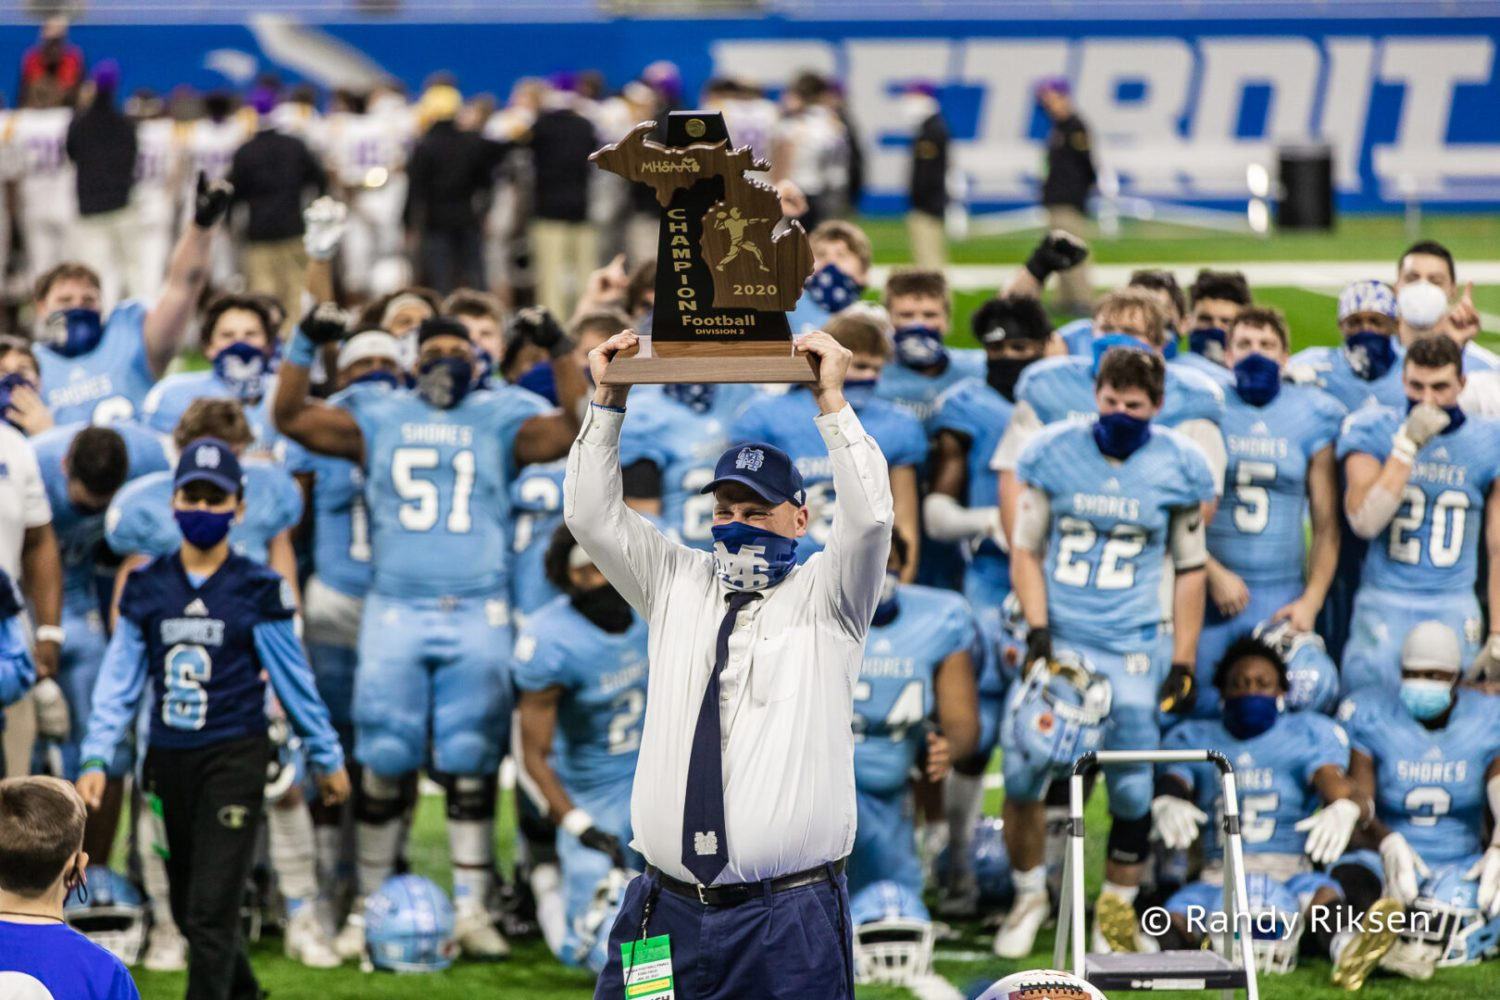 [VIDEO] Mona Shores football highlights and photos of the Sailors' big win at Ford Field